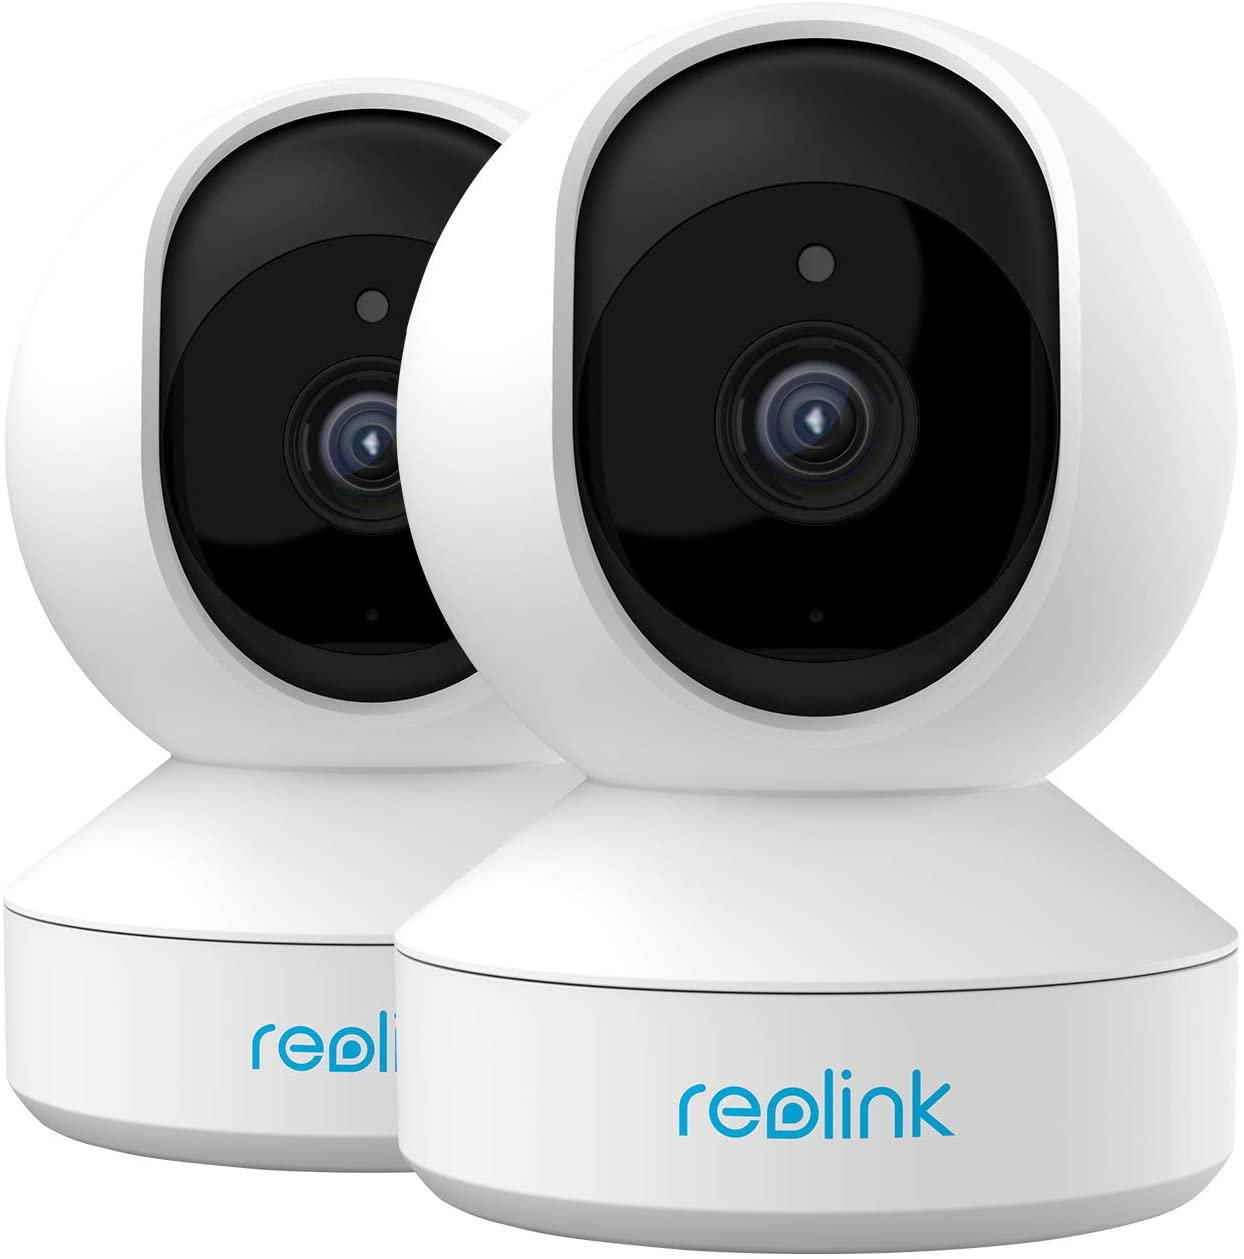 Home Security Camera System, Reolink 3MP HD Plug-in Indoor WiFi Camera - 2packs